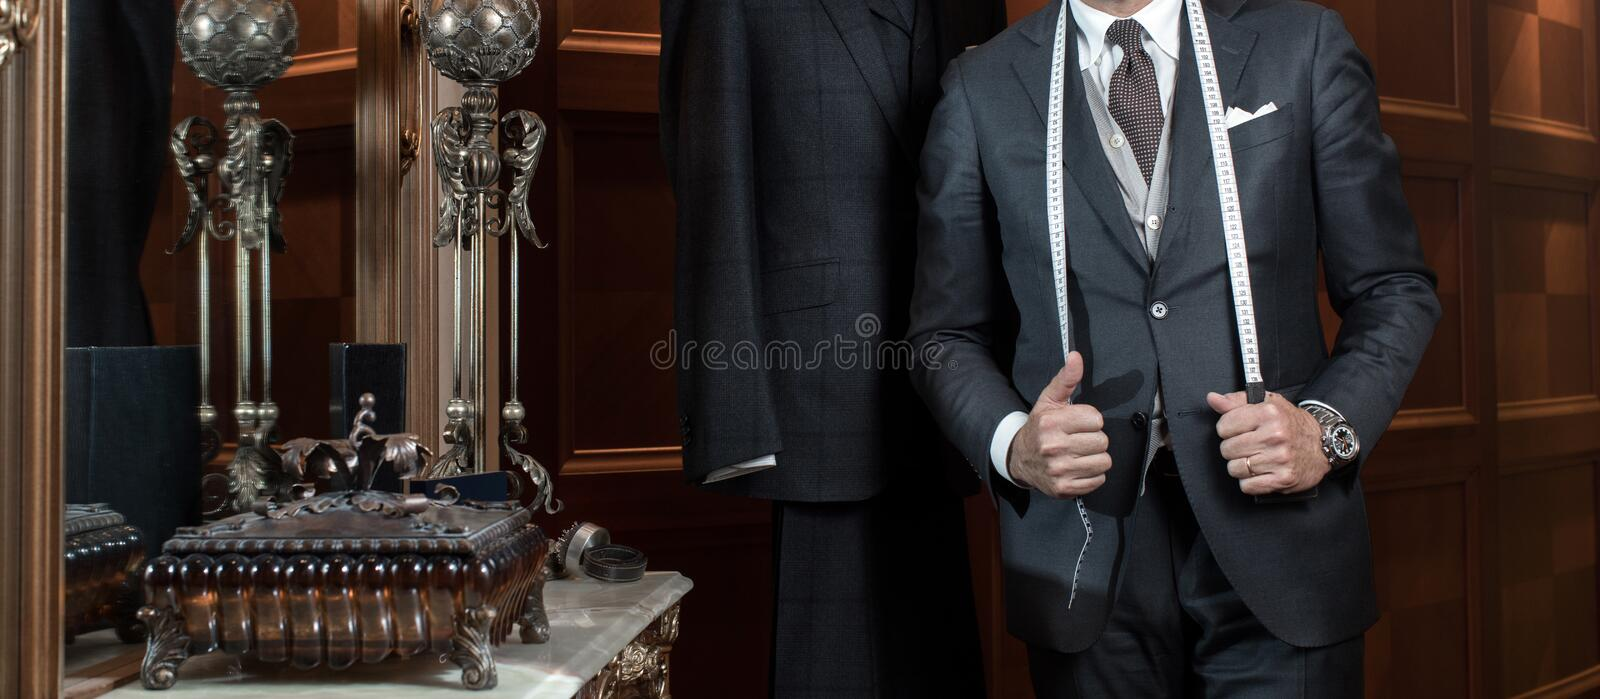 Tailor hands expensive tailoring individual suits royalty free stock image